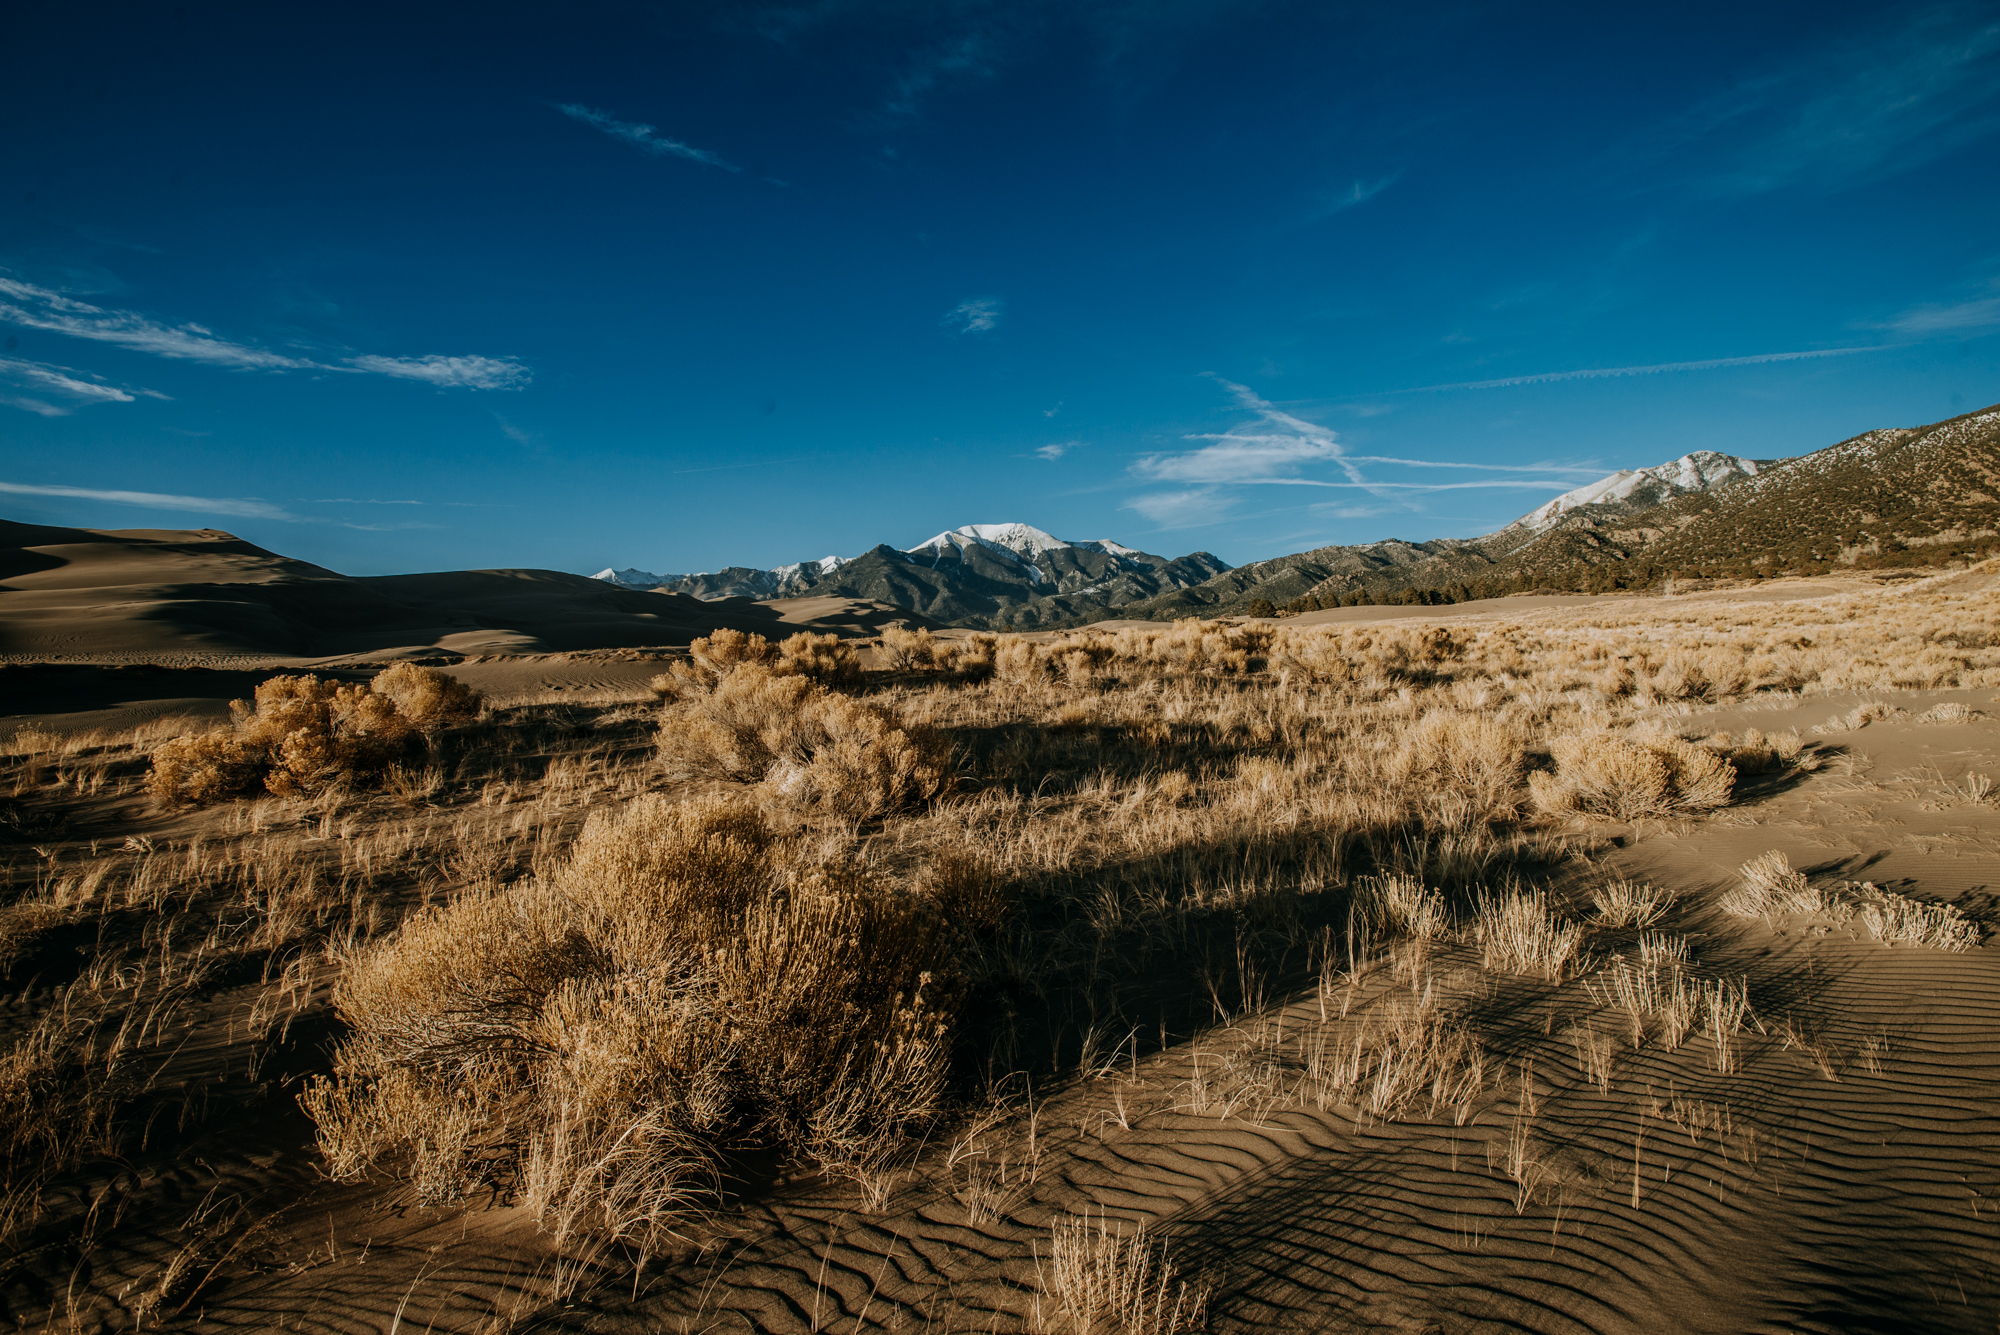 This wide angle photo shows the sand dunes and mountains in the background at Great Sand Dunes National Park.